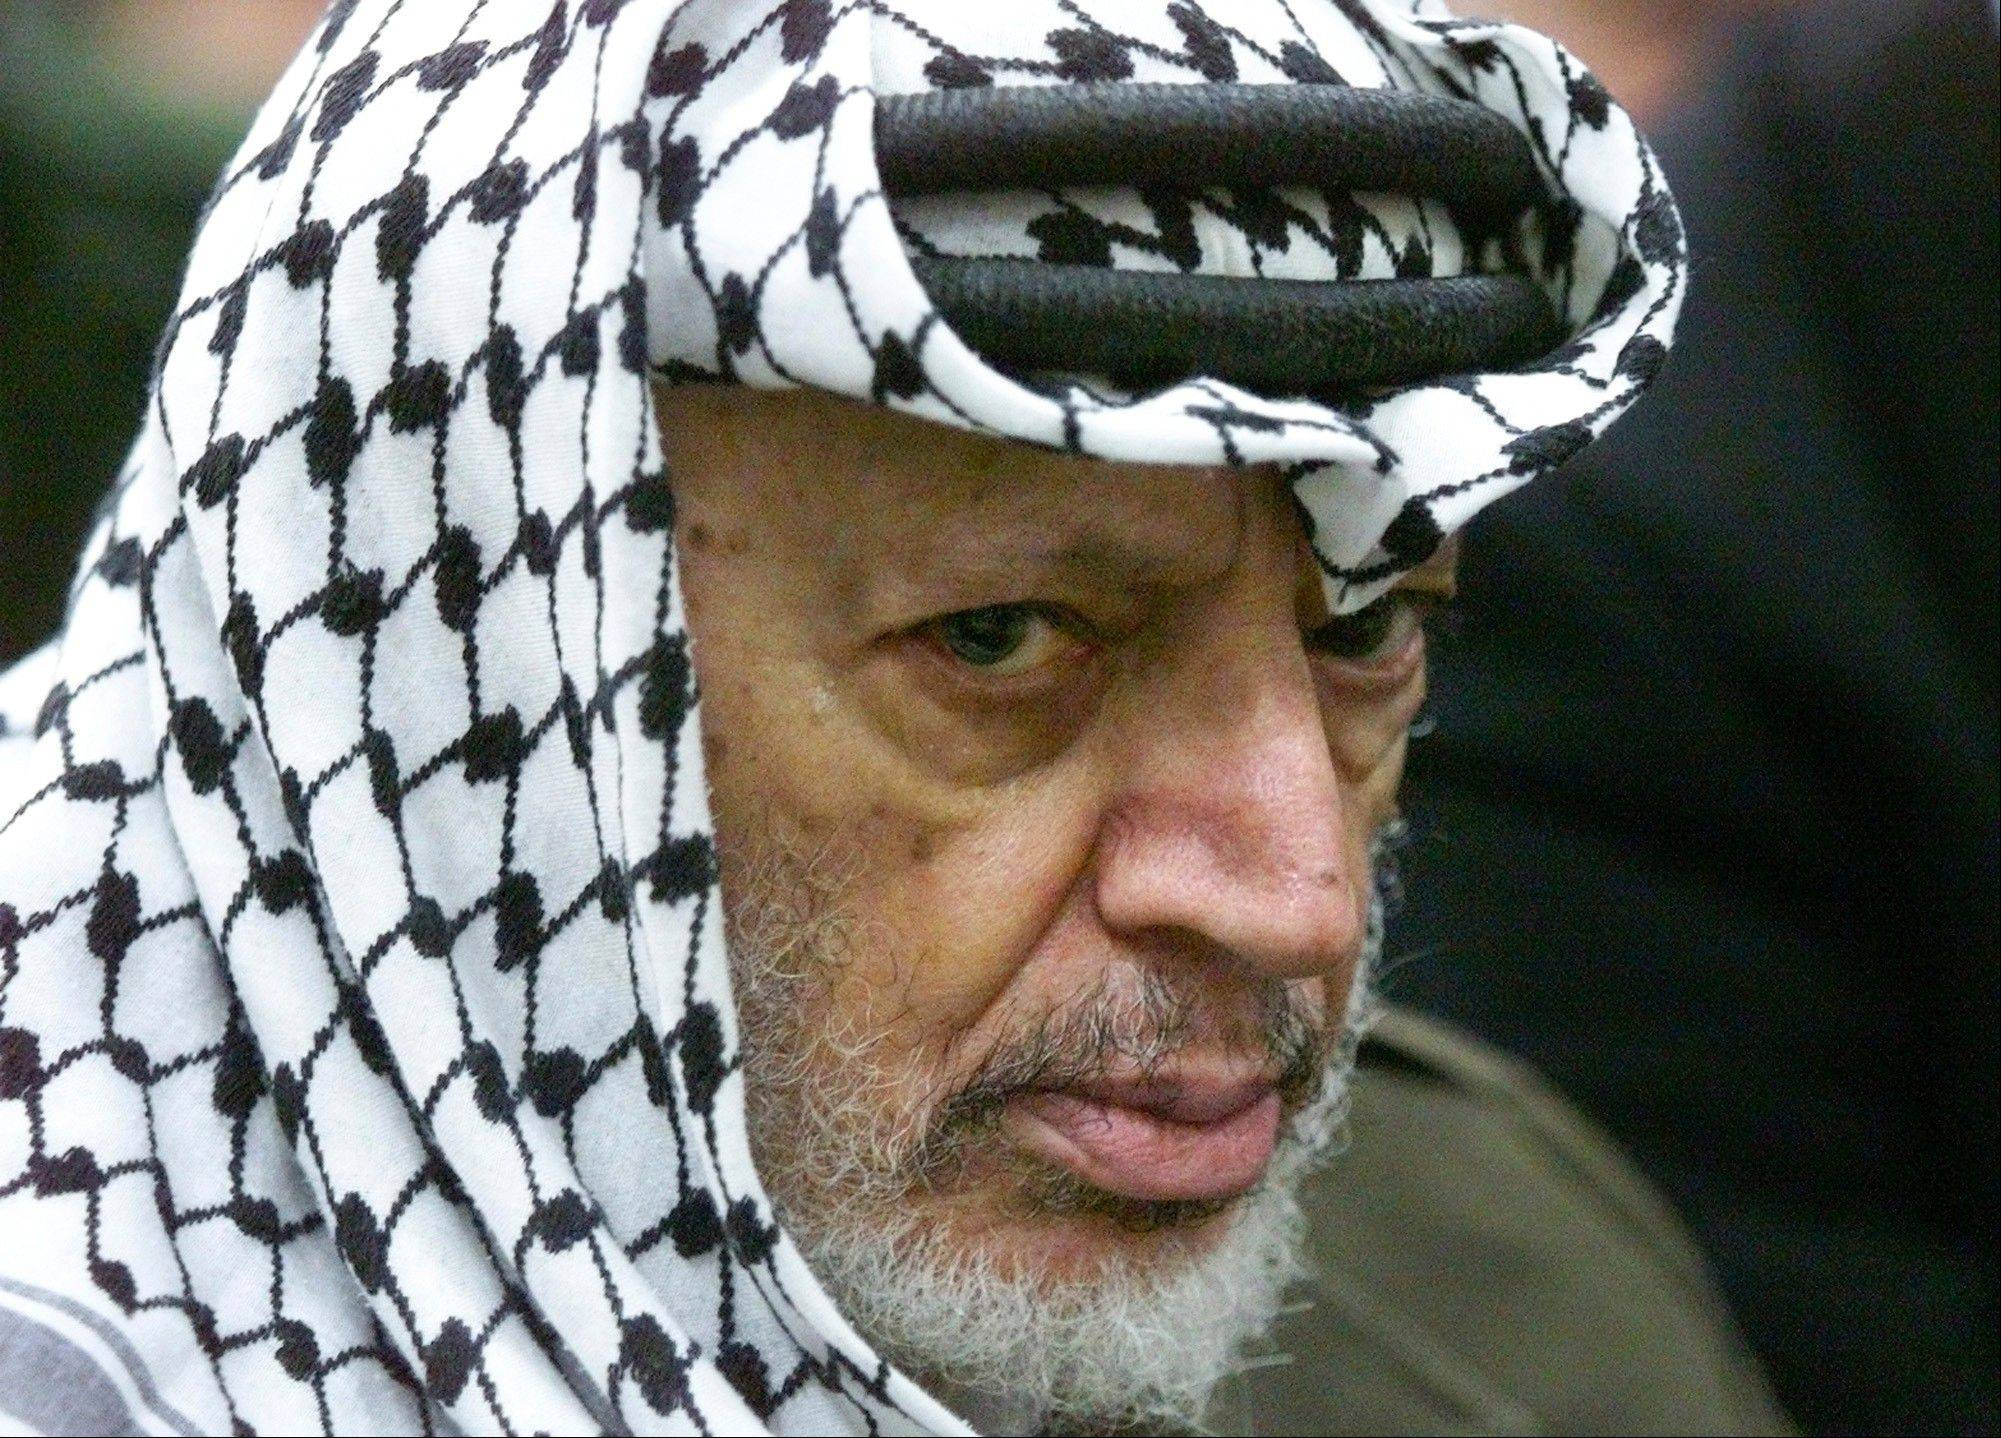 Al-Jazeera is reporting that a team of Swiss scientists has found moderate evidence that longtime Palestinian leader Yasser Arafat died of poisoning. The Arab satellite channel published a copy of what it said was the scientists' report on its website on Wednesday.